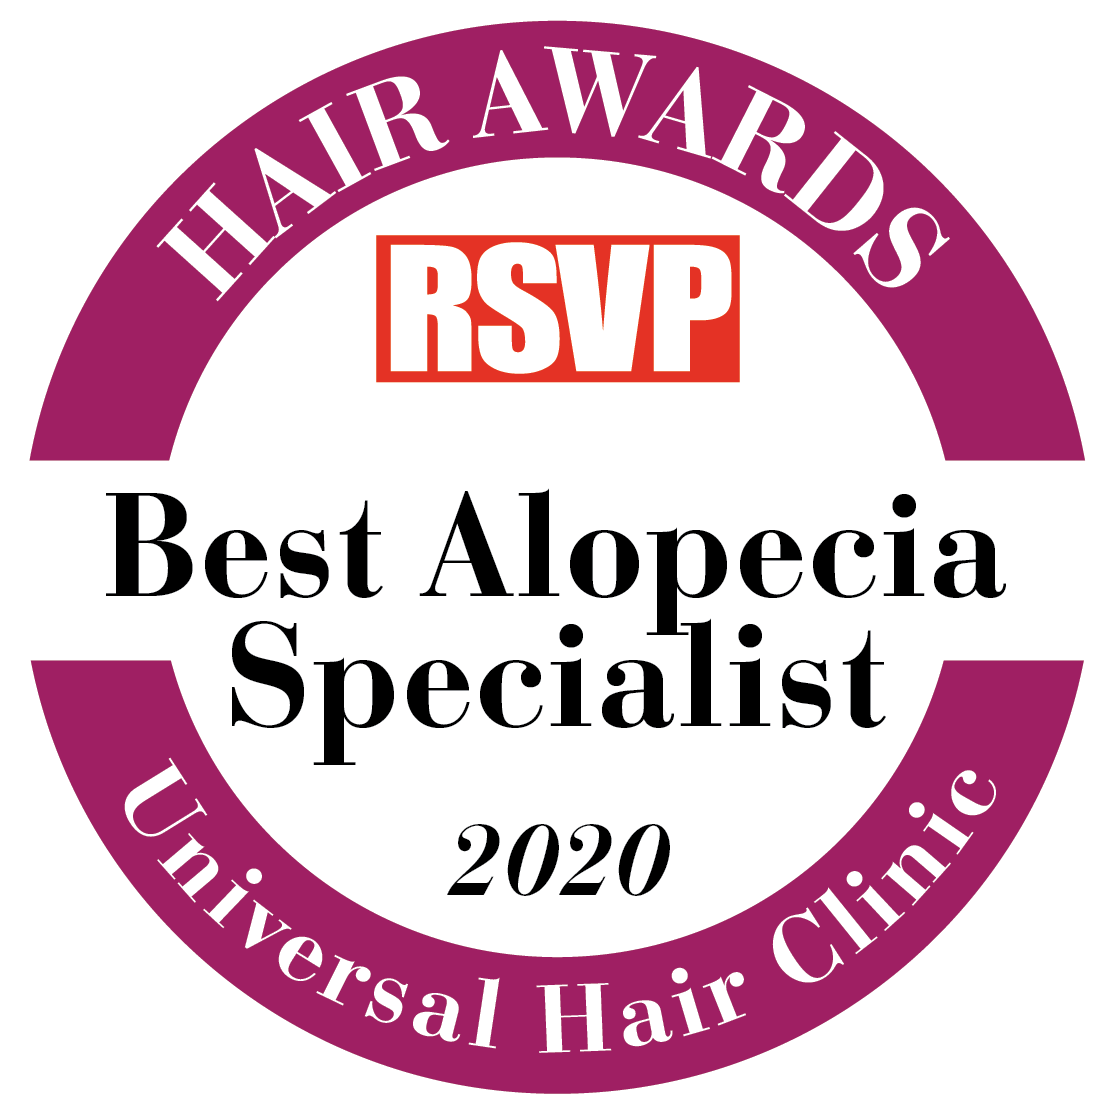 Hair Clinic Dublin - Hair Awards 2020